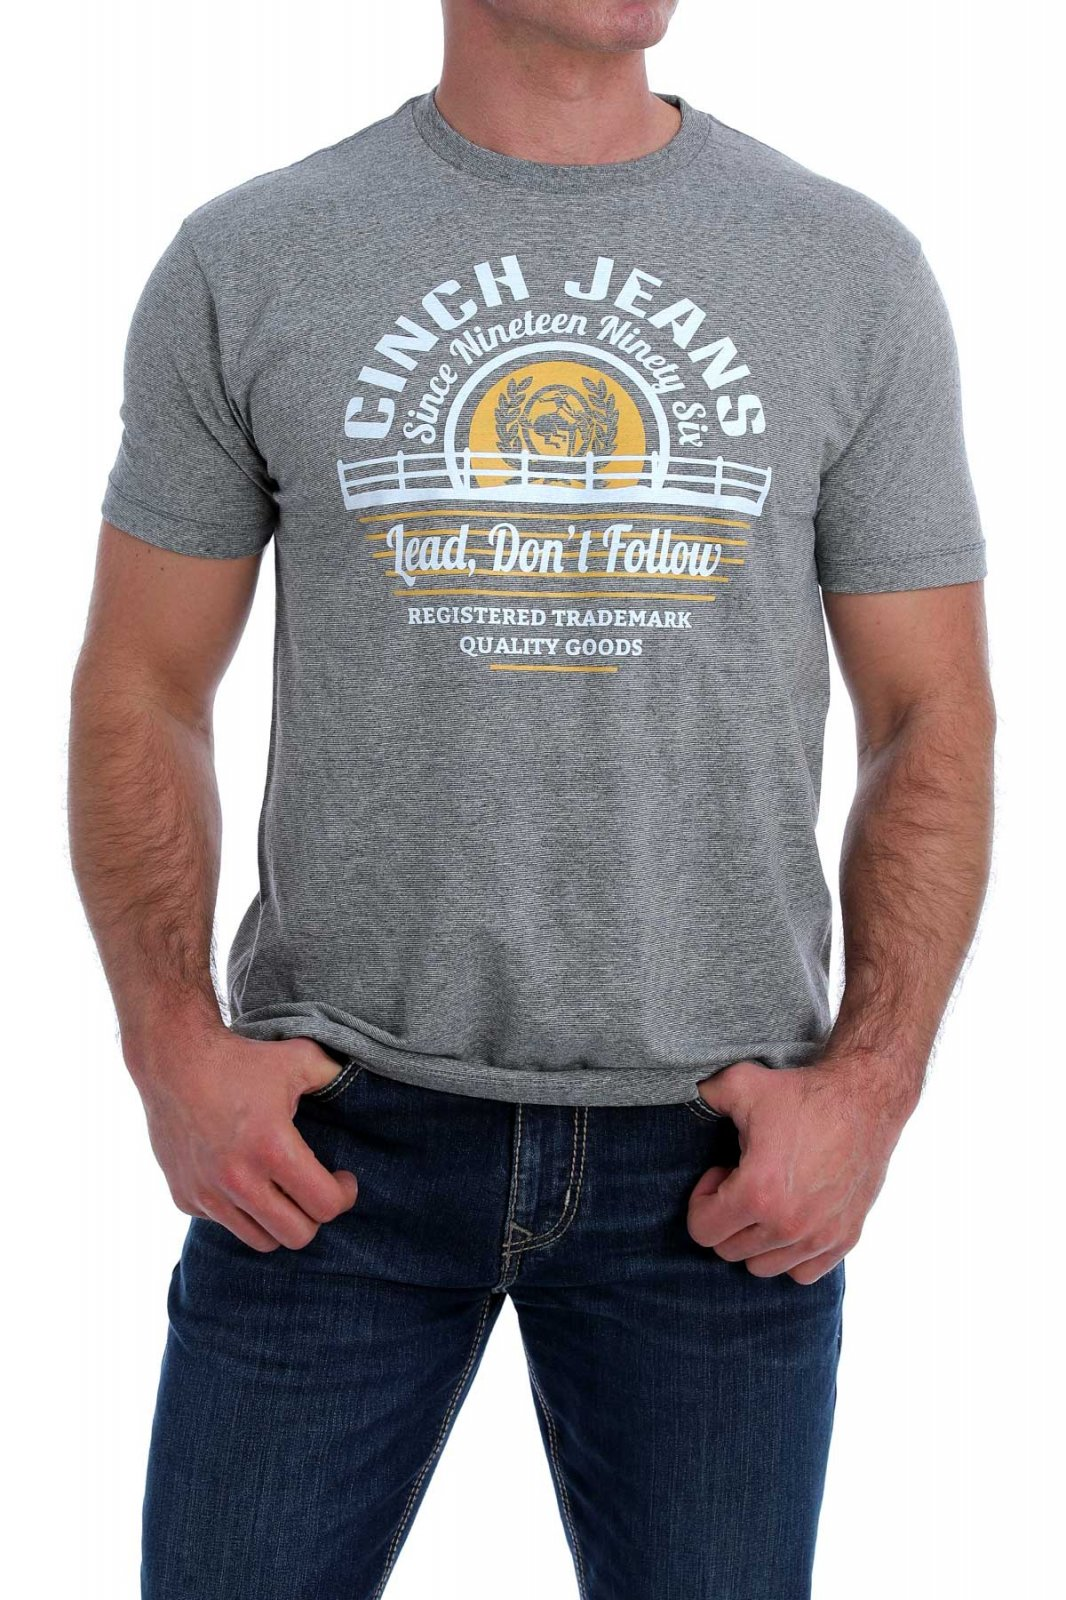 Lead Don't Follow Tee from Cinch